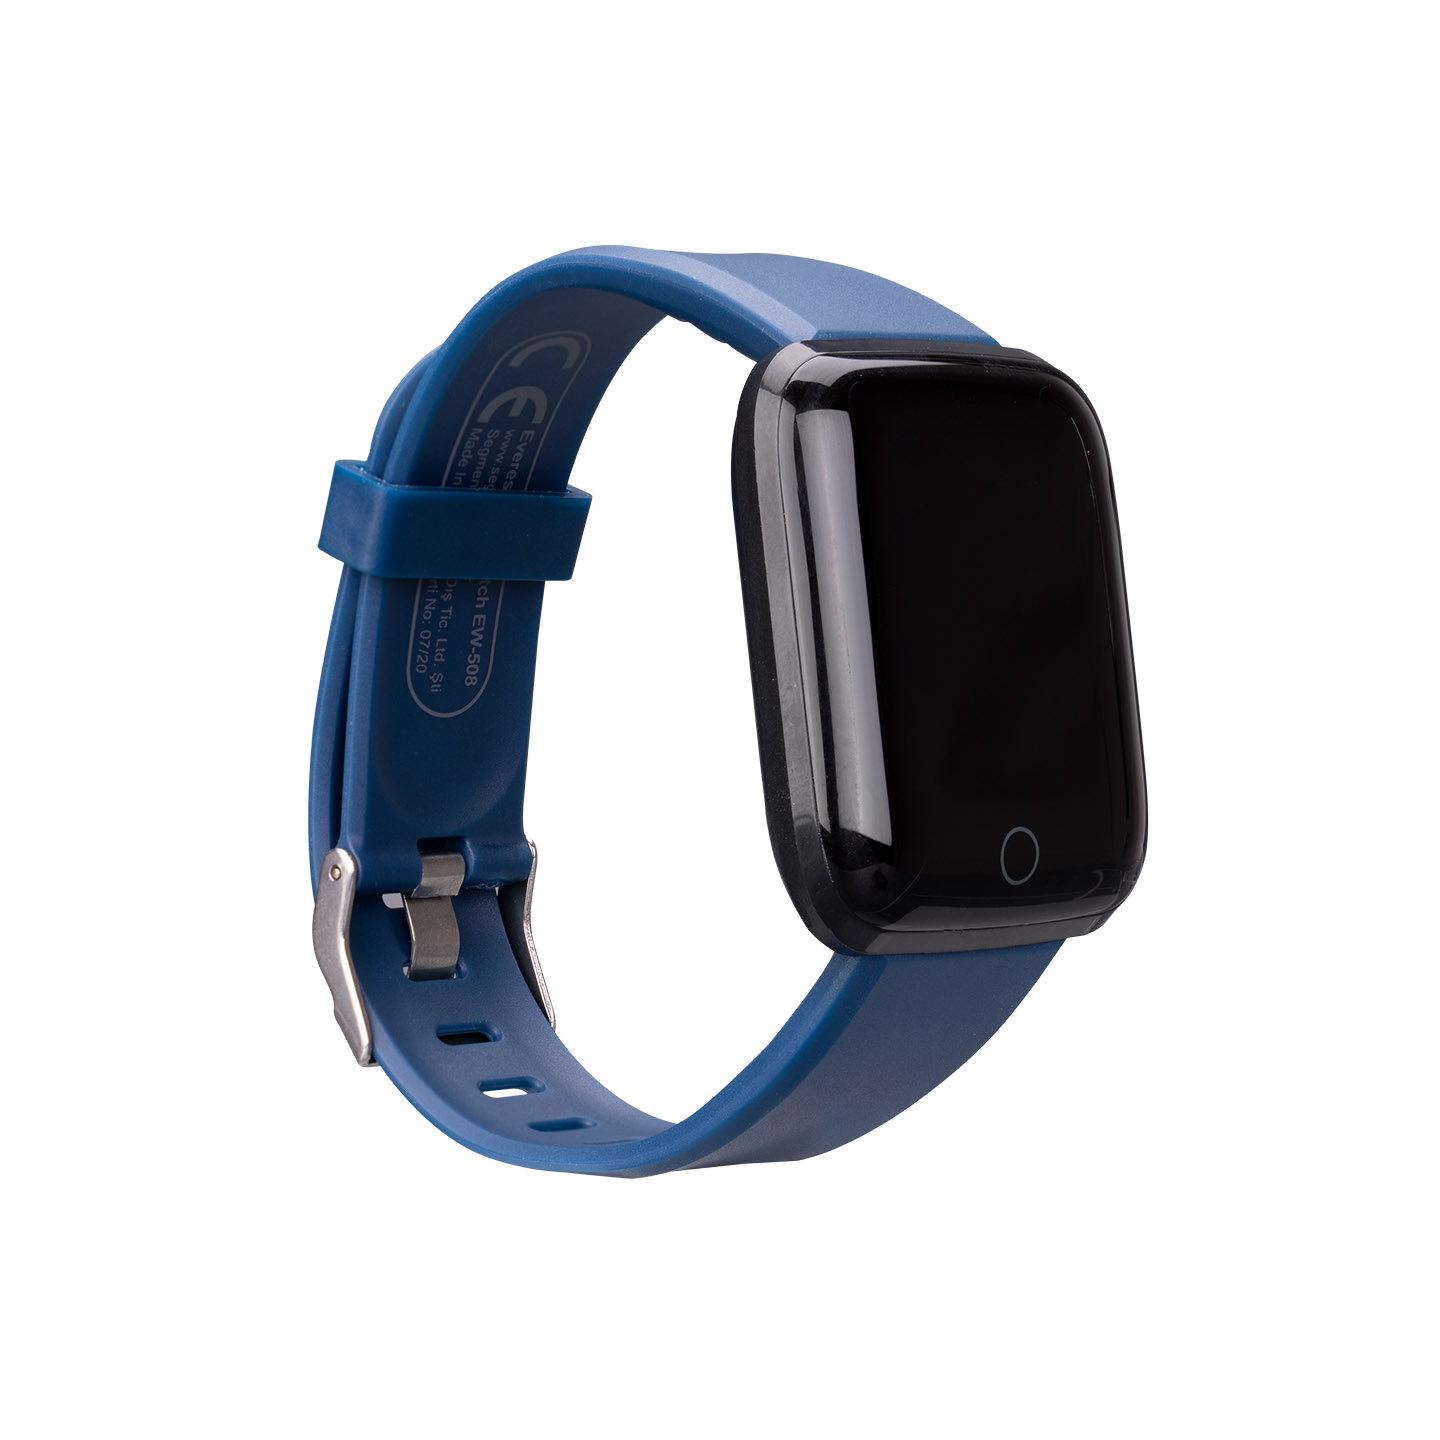 Everest Ever Watch EW-508 Android/IOS Smart Watch Kalp Atışı Sensörlü Mavi Akıllı Saat